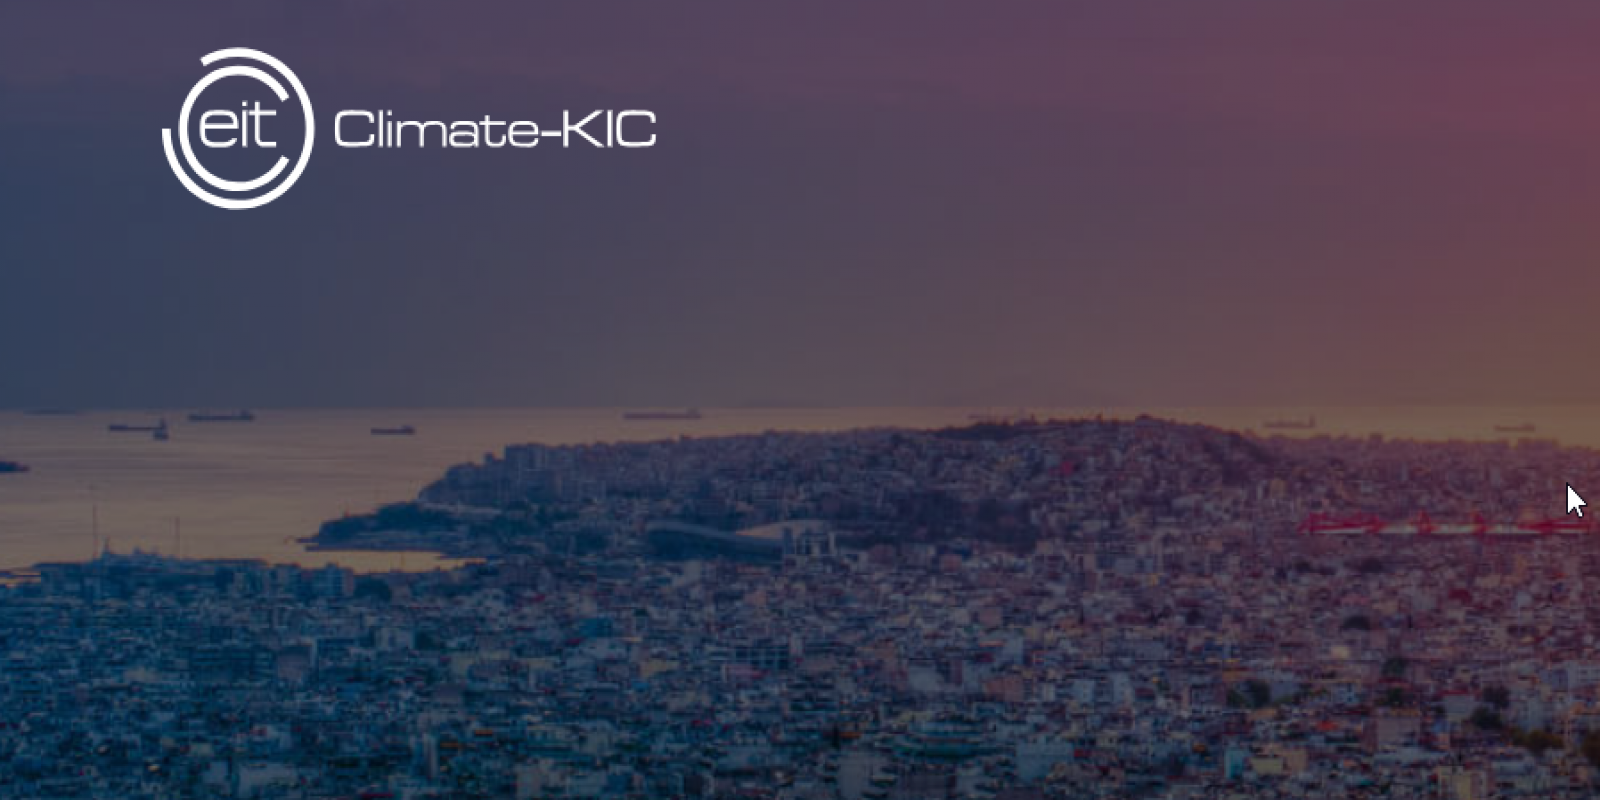 On the 1st of October 2018, the official inauguration ceremony of EIT Climate-KIC Hub Greece will take place at Hilton Hotel, Athens !